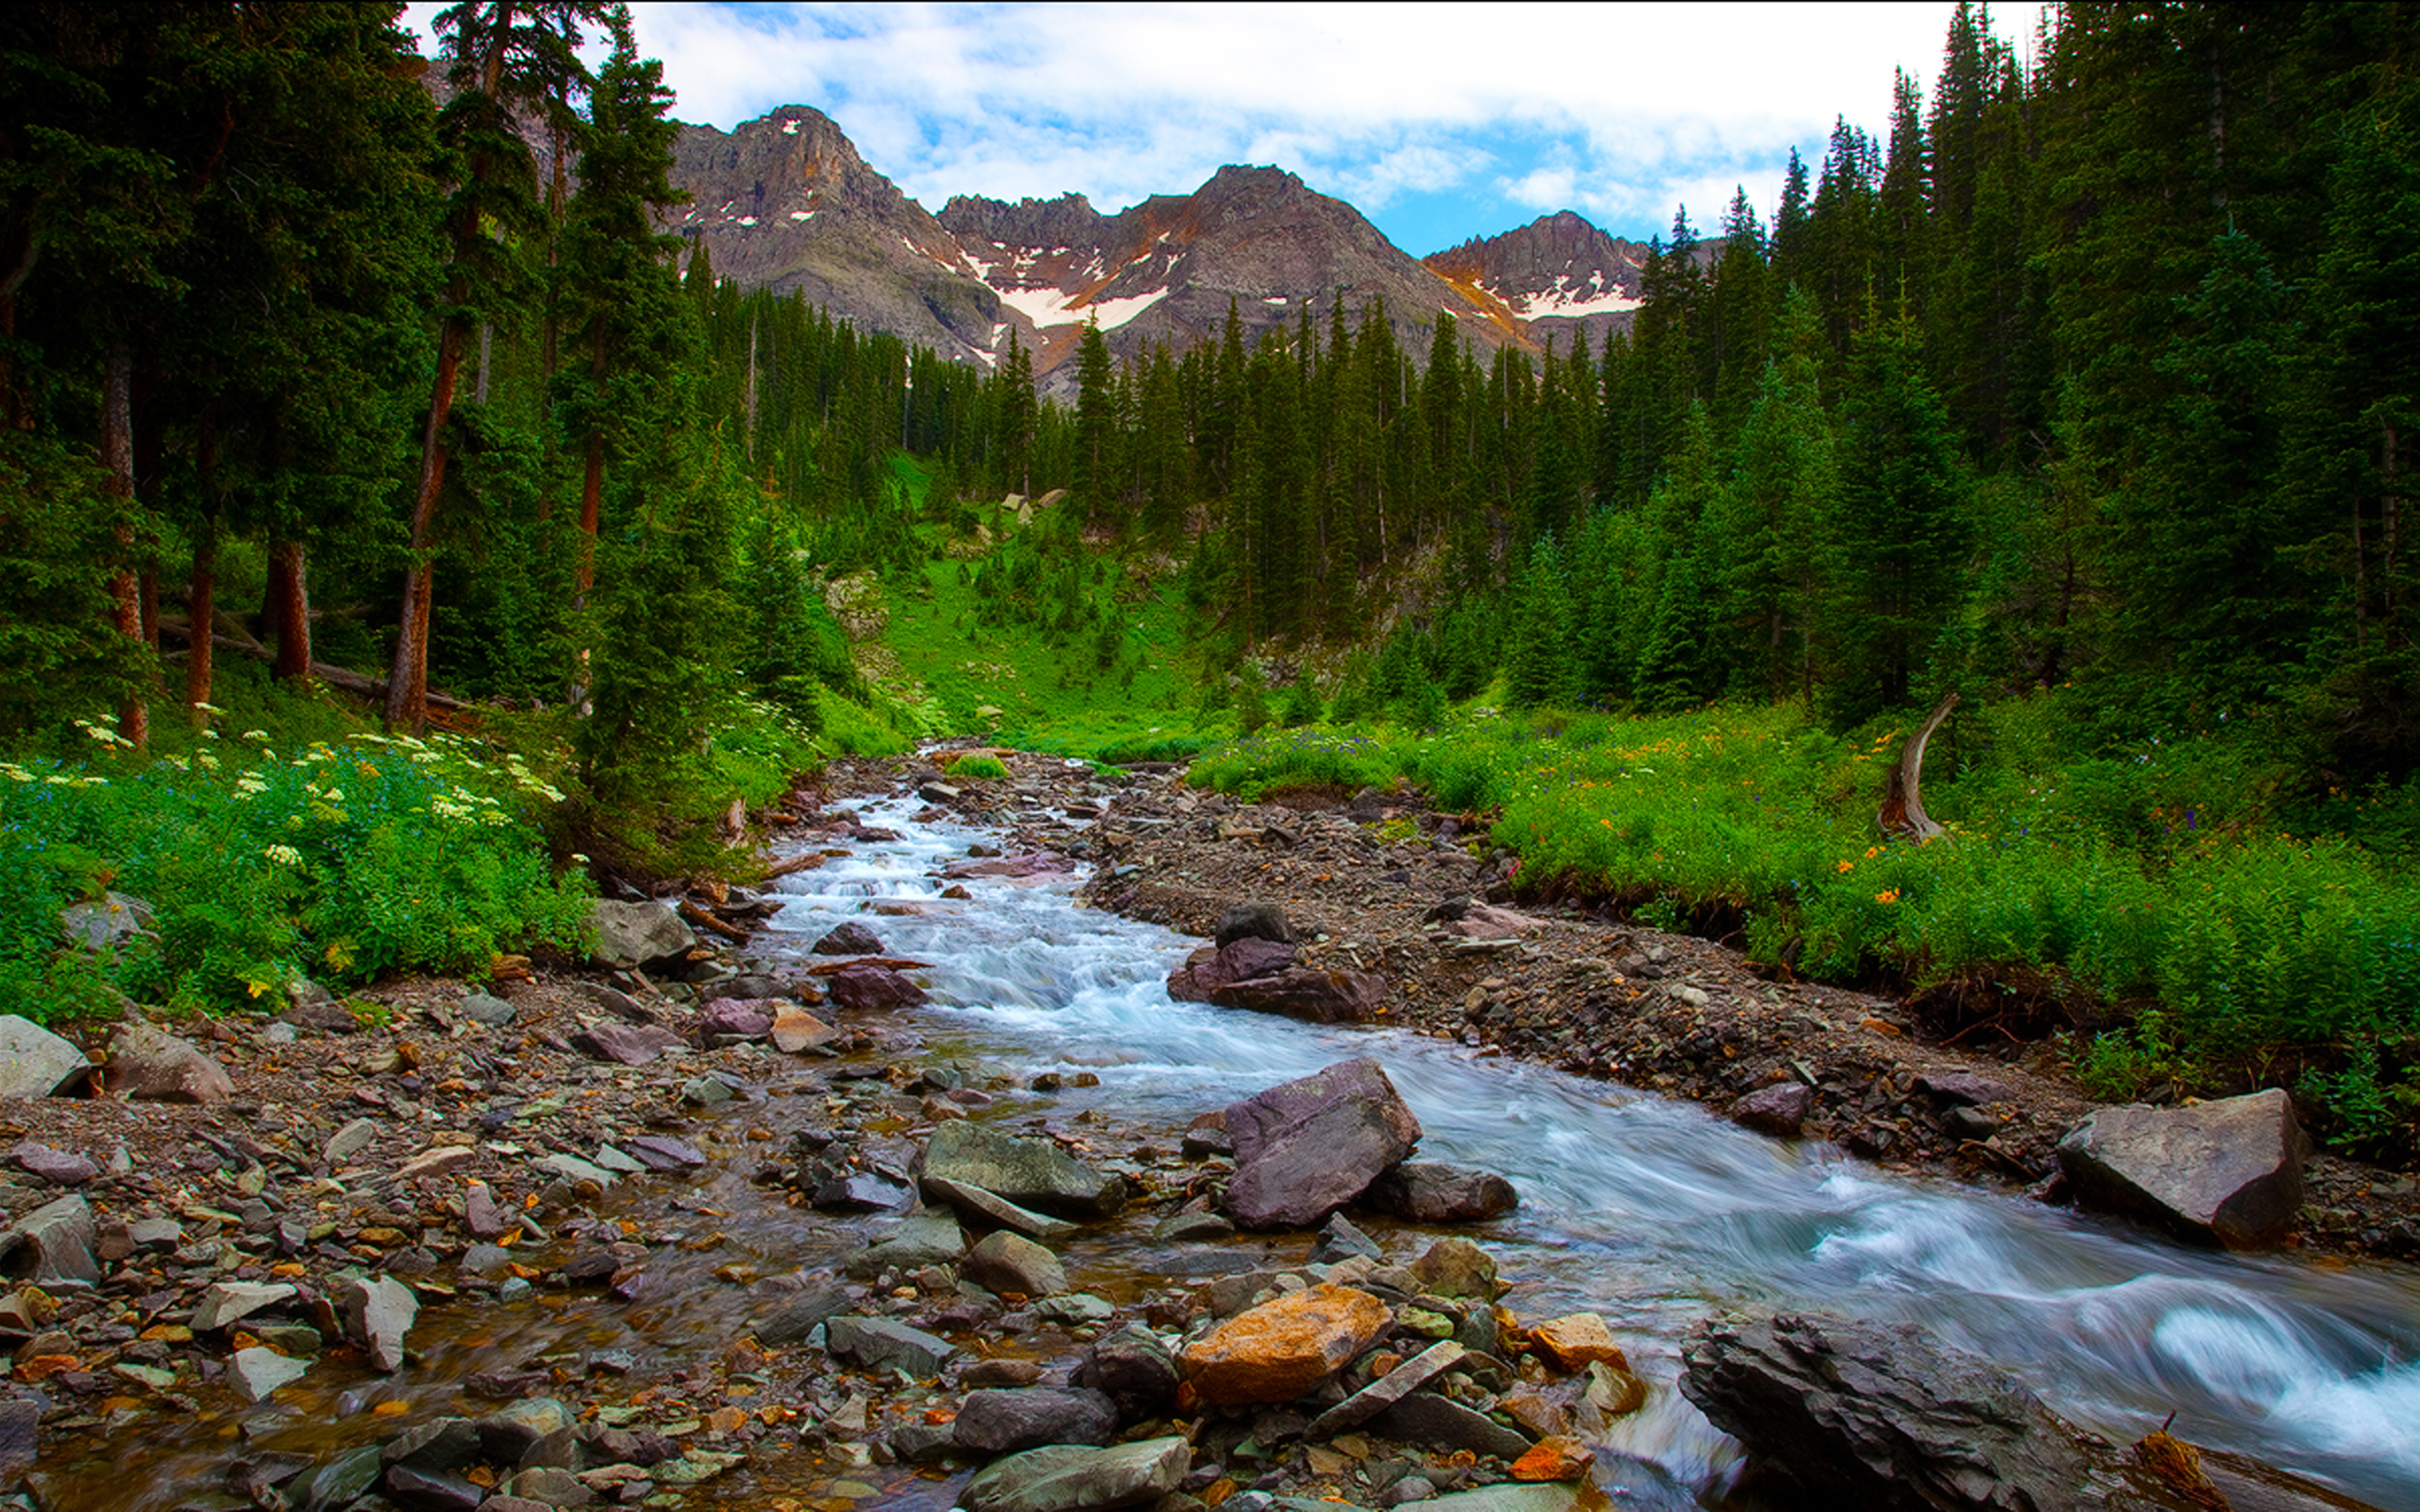 Fall Mountains Hd Wallpaper 13 Spring Landscape River Mountain Flowers Pine Forest Hd